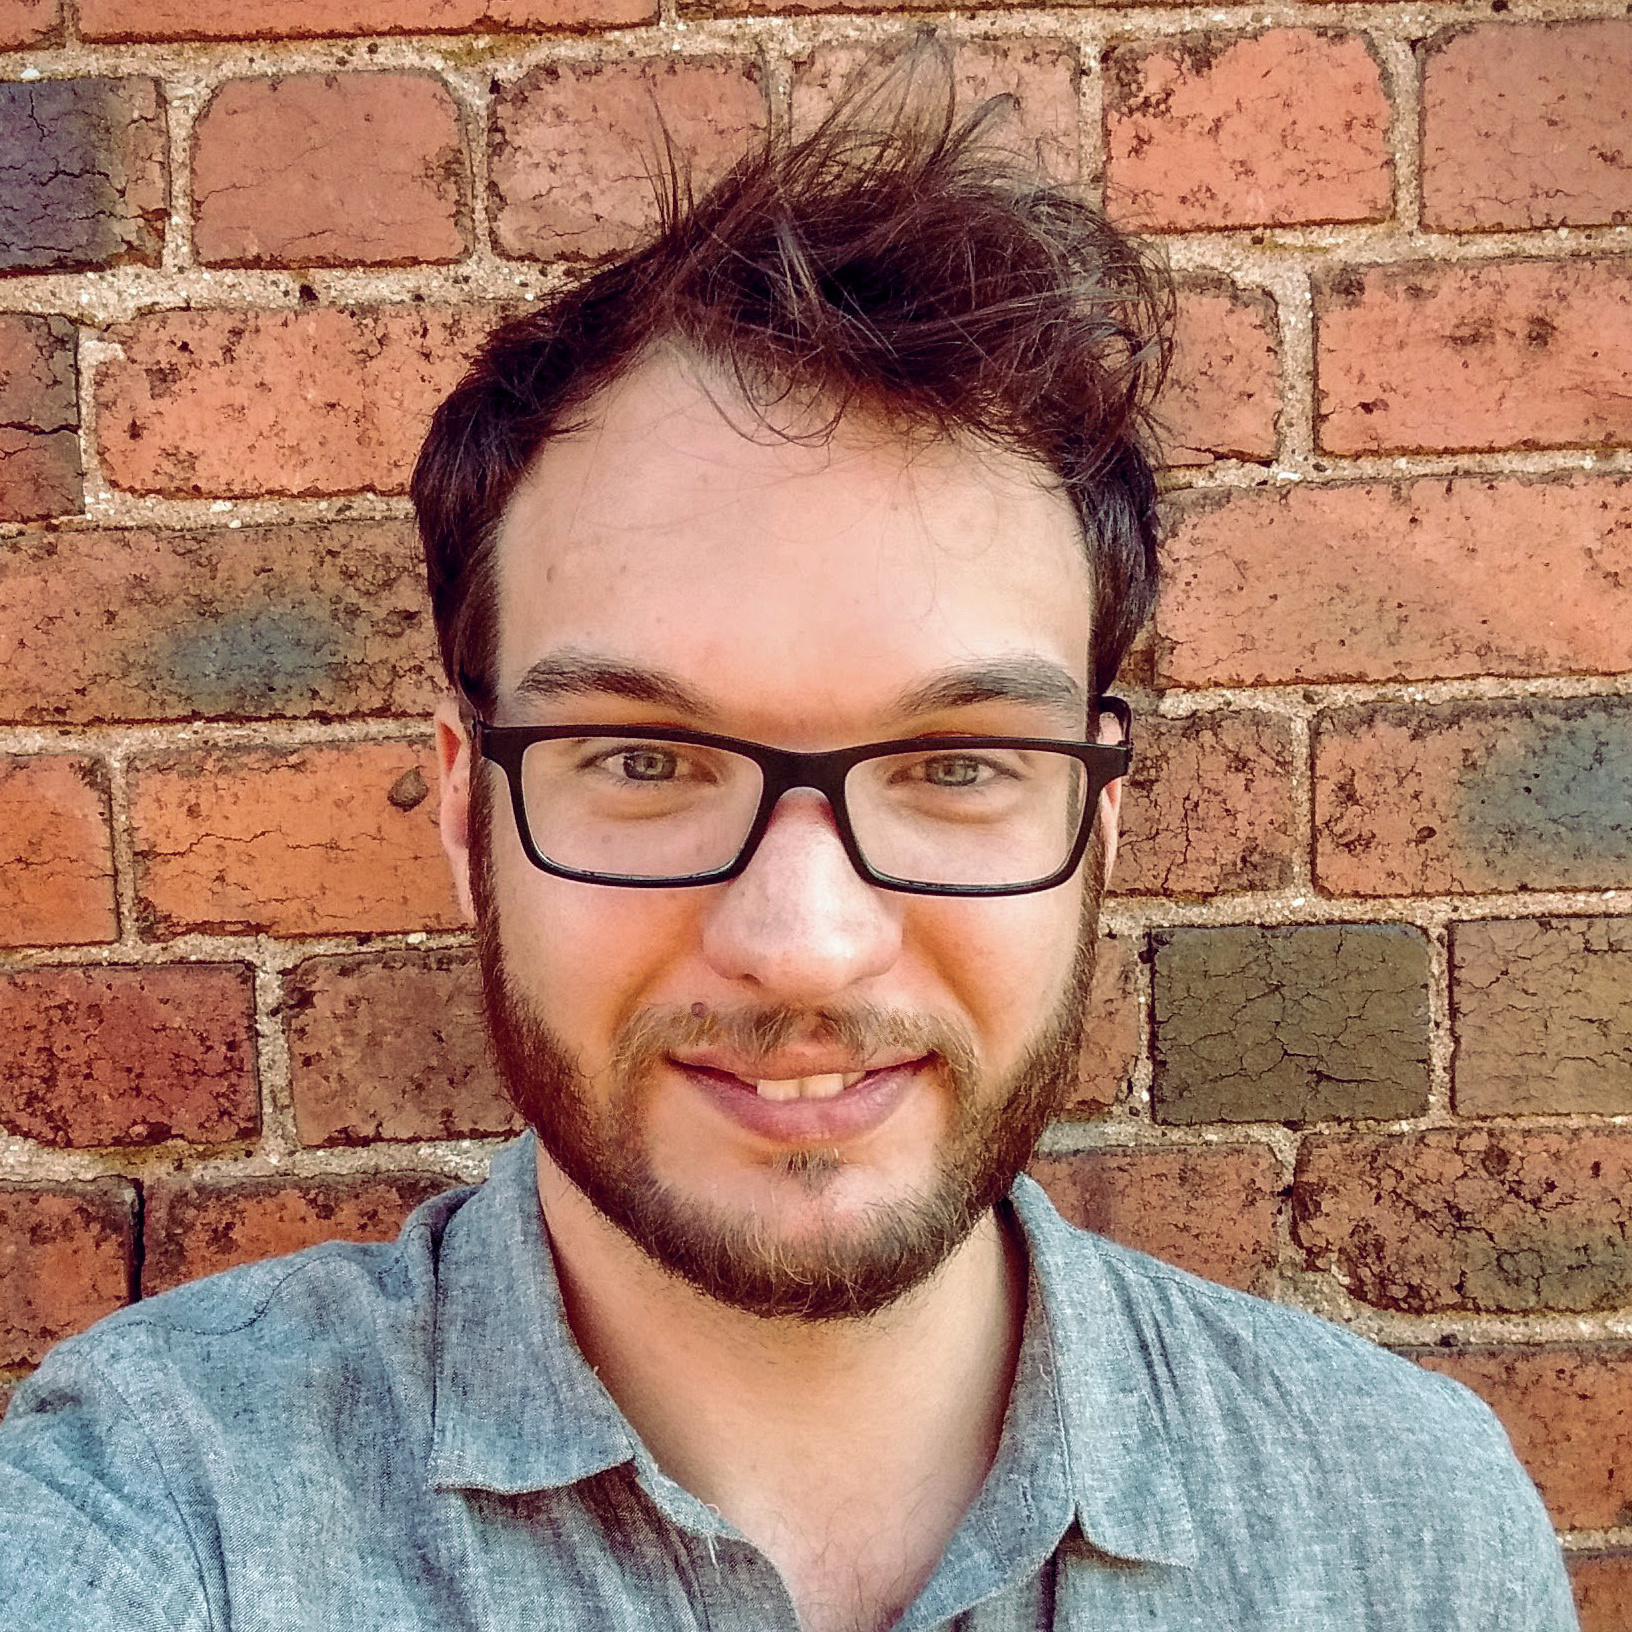 Alan Vaarwerk   is Editor at  Kill Your Darlings , as well as a writer and TV captioner. His writing has appeared in Stilts, Griffith Review, Writers Bloc and Kill Your Darlings. He grew up in Grafton NSW, grew up some more in Brisbane, and now lives in Melbourne.